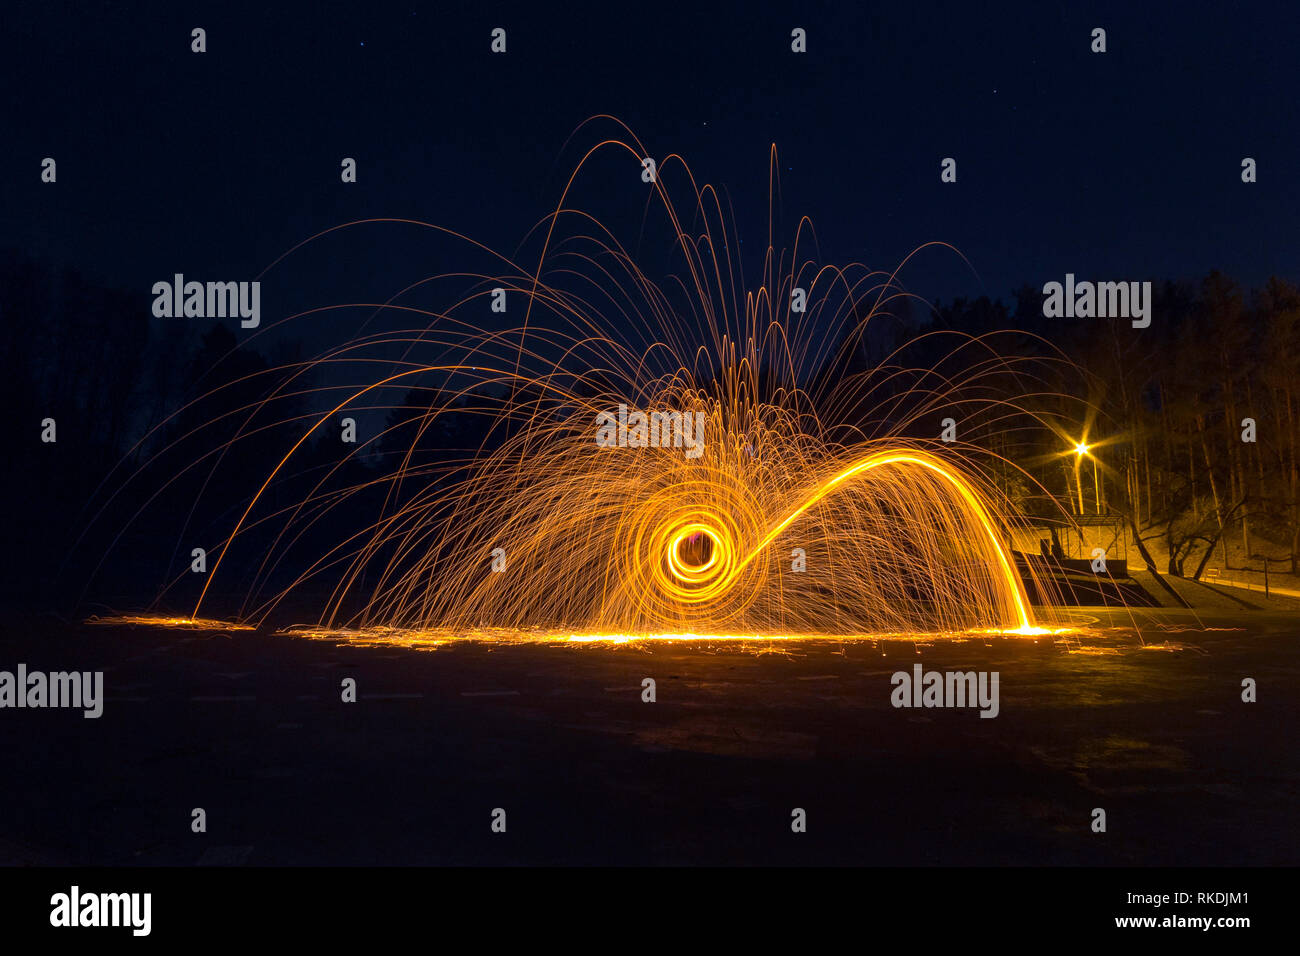 Steel wool long exposure photograph at night, photography workshop Stock Photo